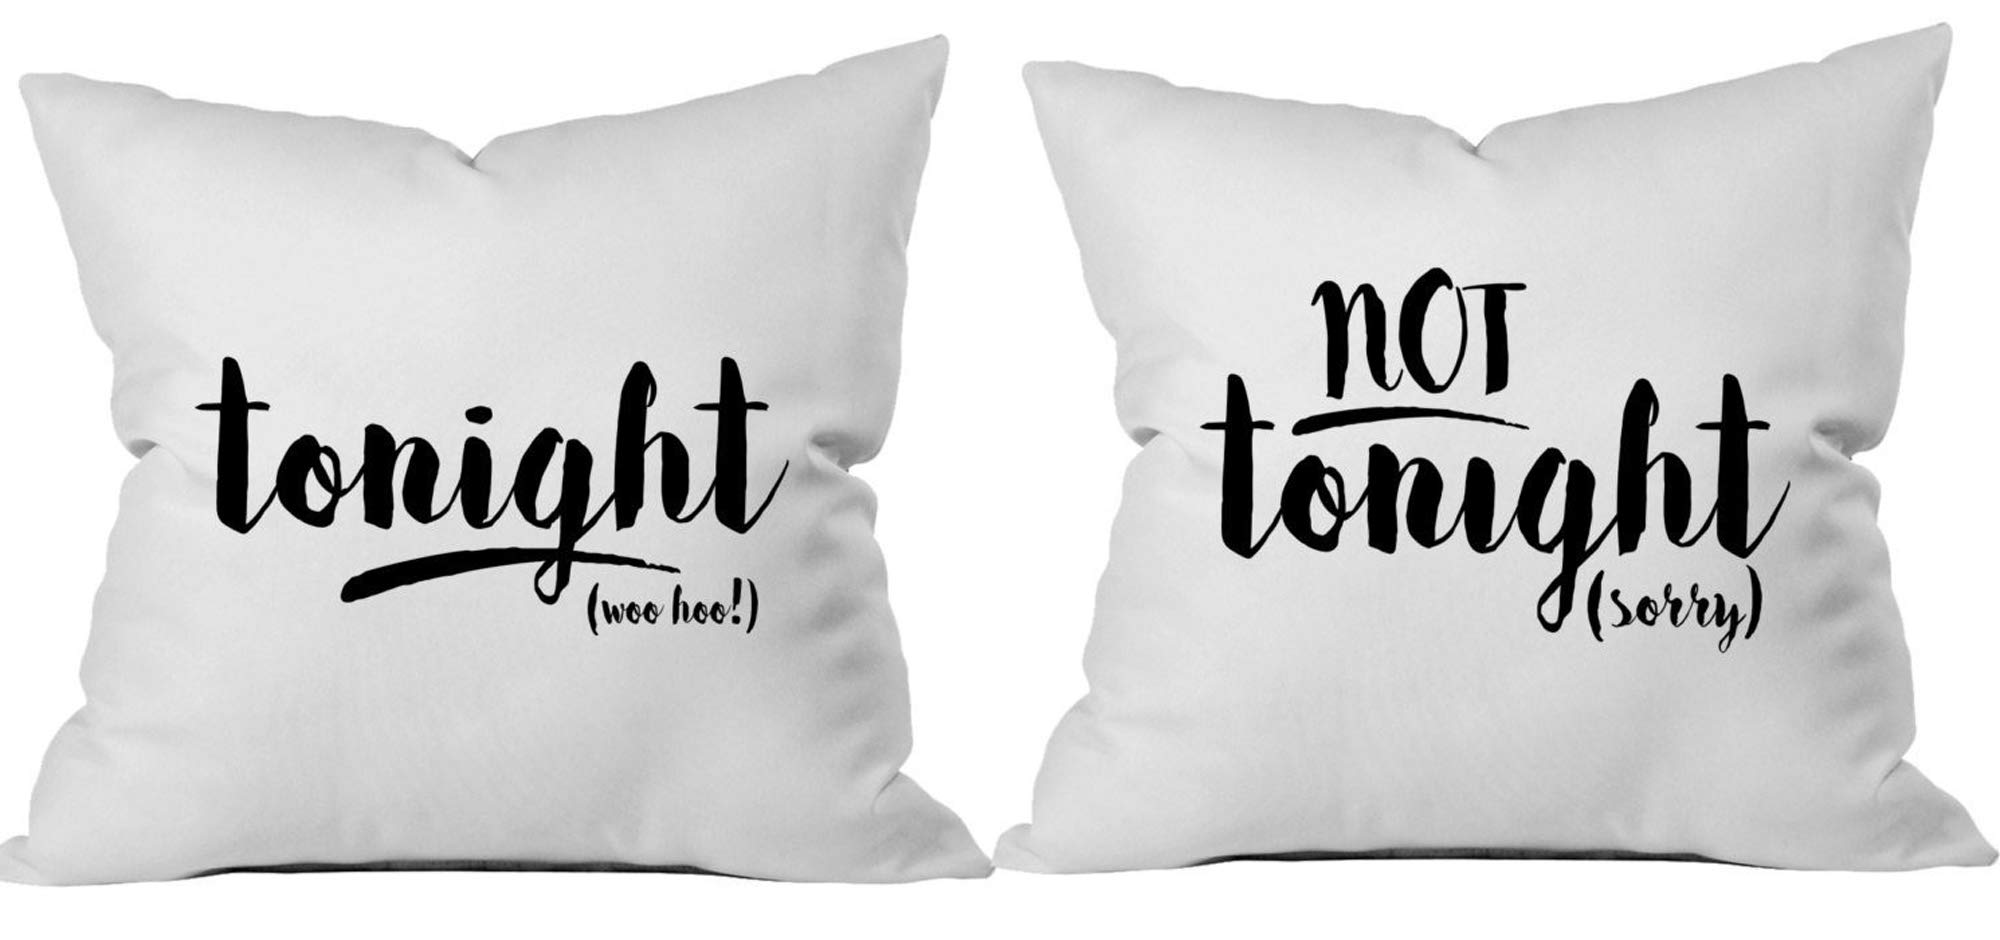 Oh, Susannah Tonight Not Tonight Reversible Throw Pillow Case - Cover Fits 18x18 Insert- Packaged in Gift Box Perfect for Couples - Engagement - Bachelorette Party - Bridal Shower